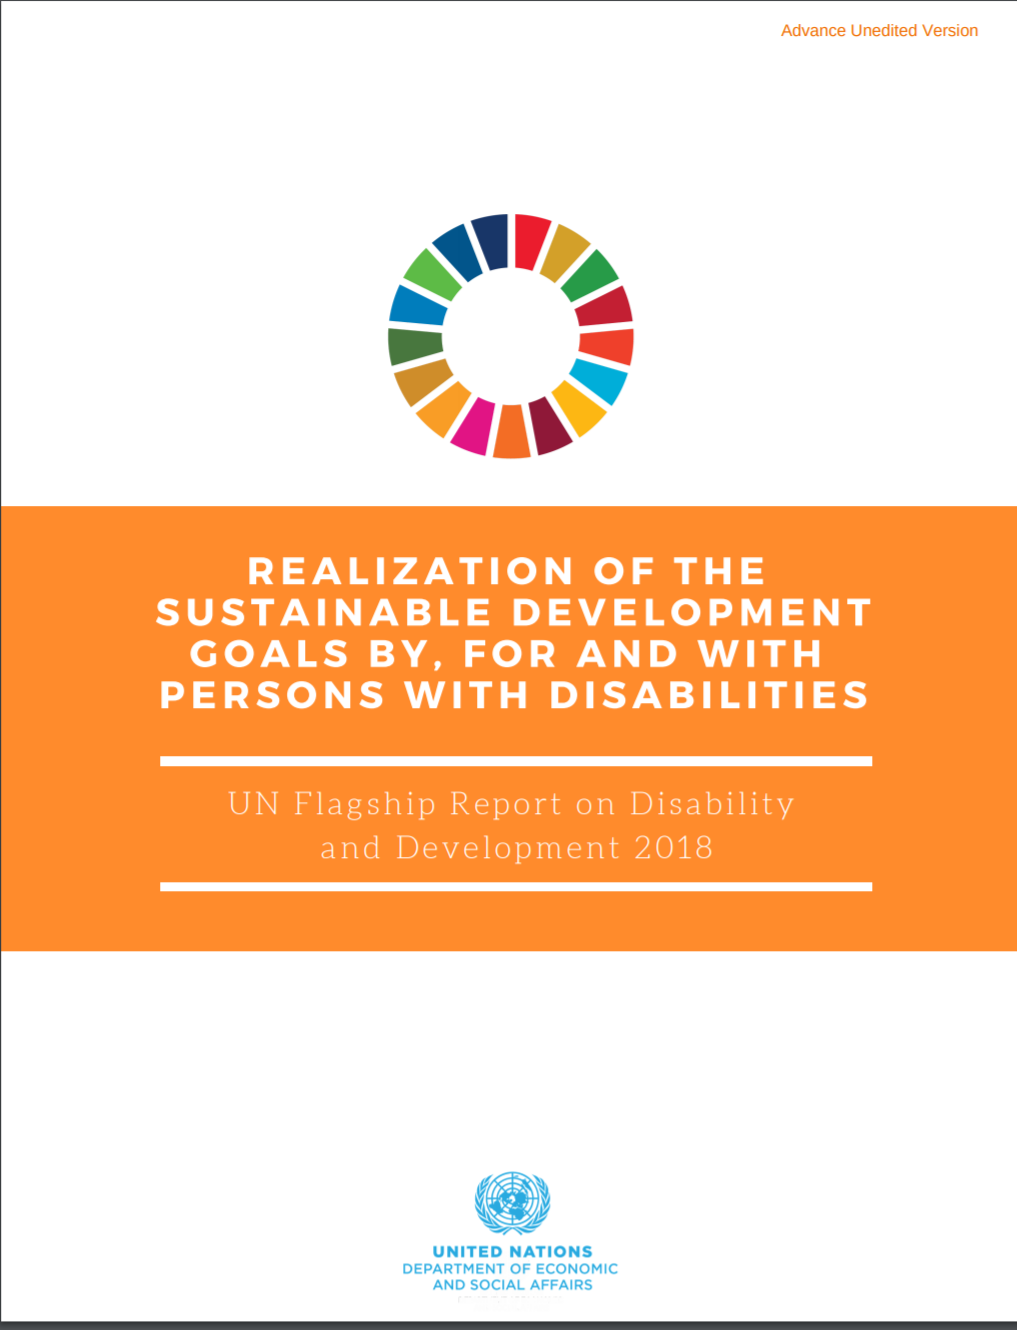 """Cover of the report """"UN Flagship Report on Disability and Development 2018: Realization of the Sustainable Development Goals by, for and with Persons with Disabilities"""""""